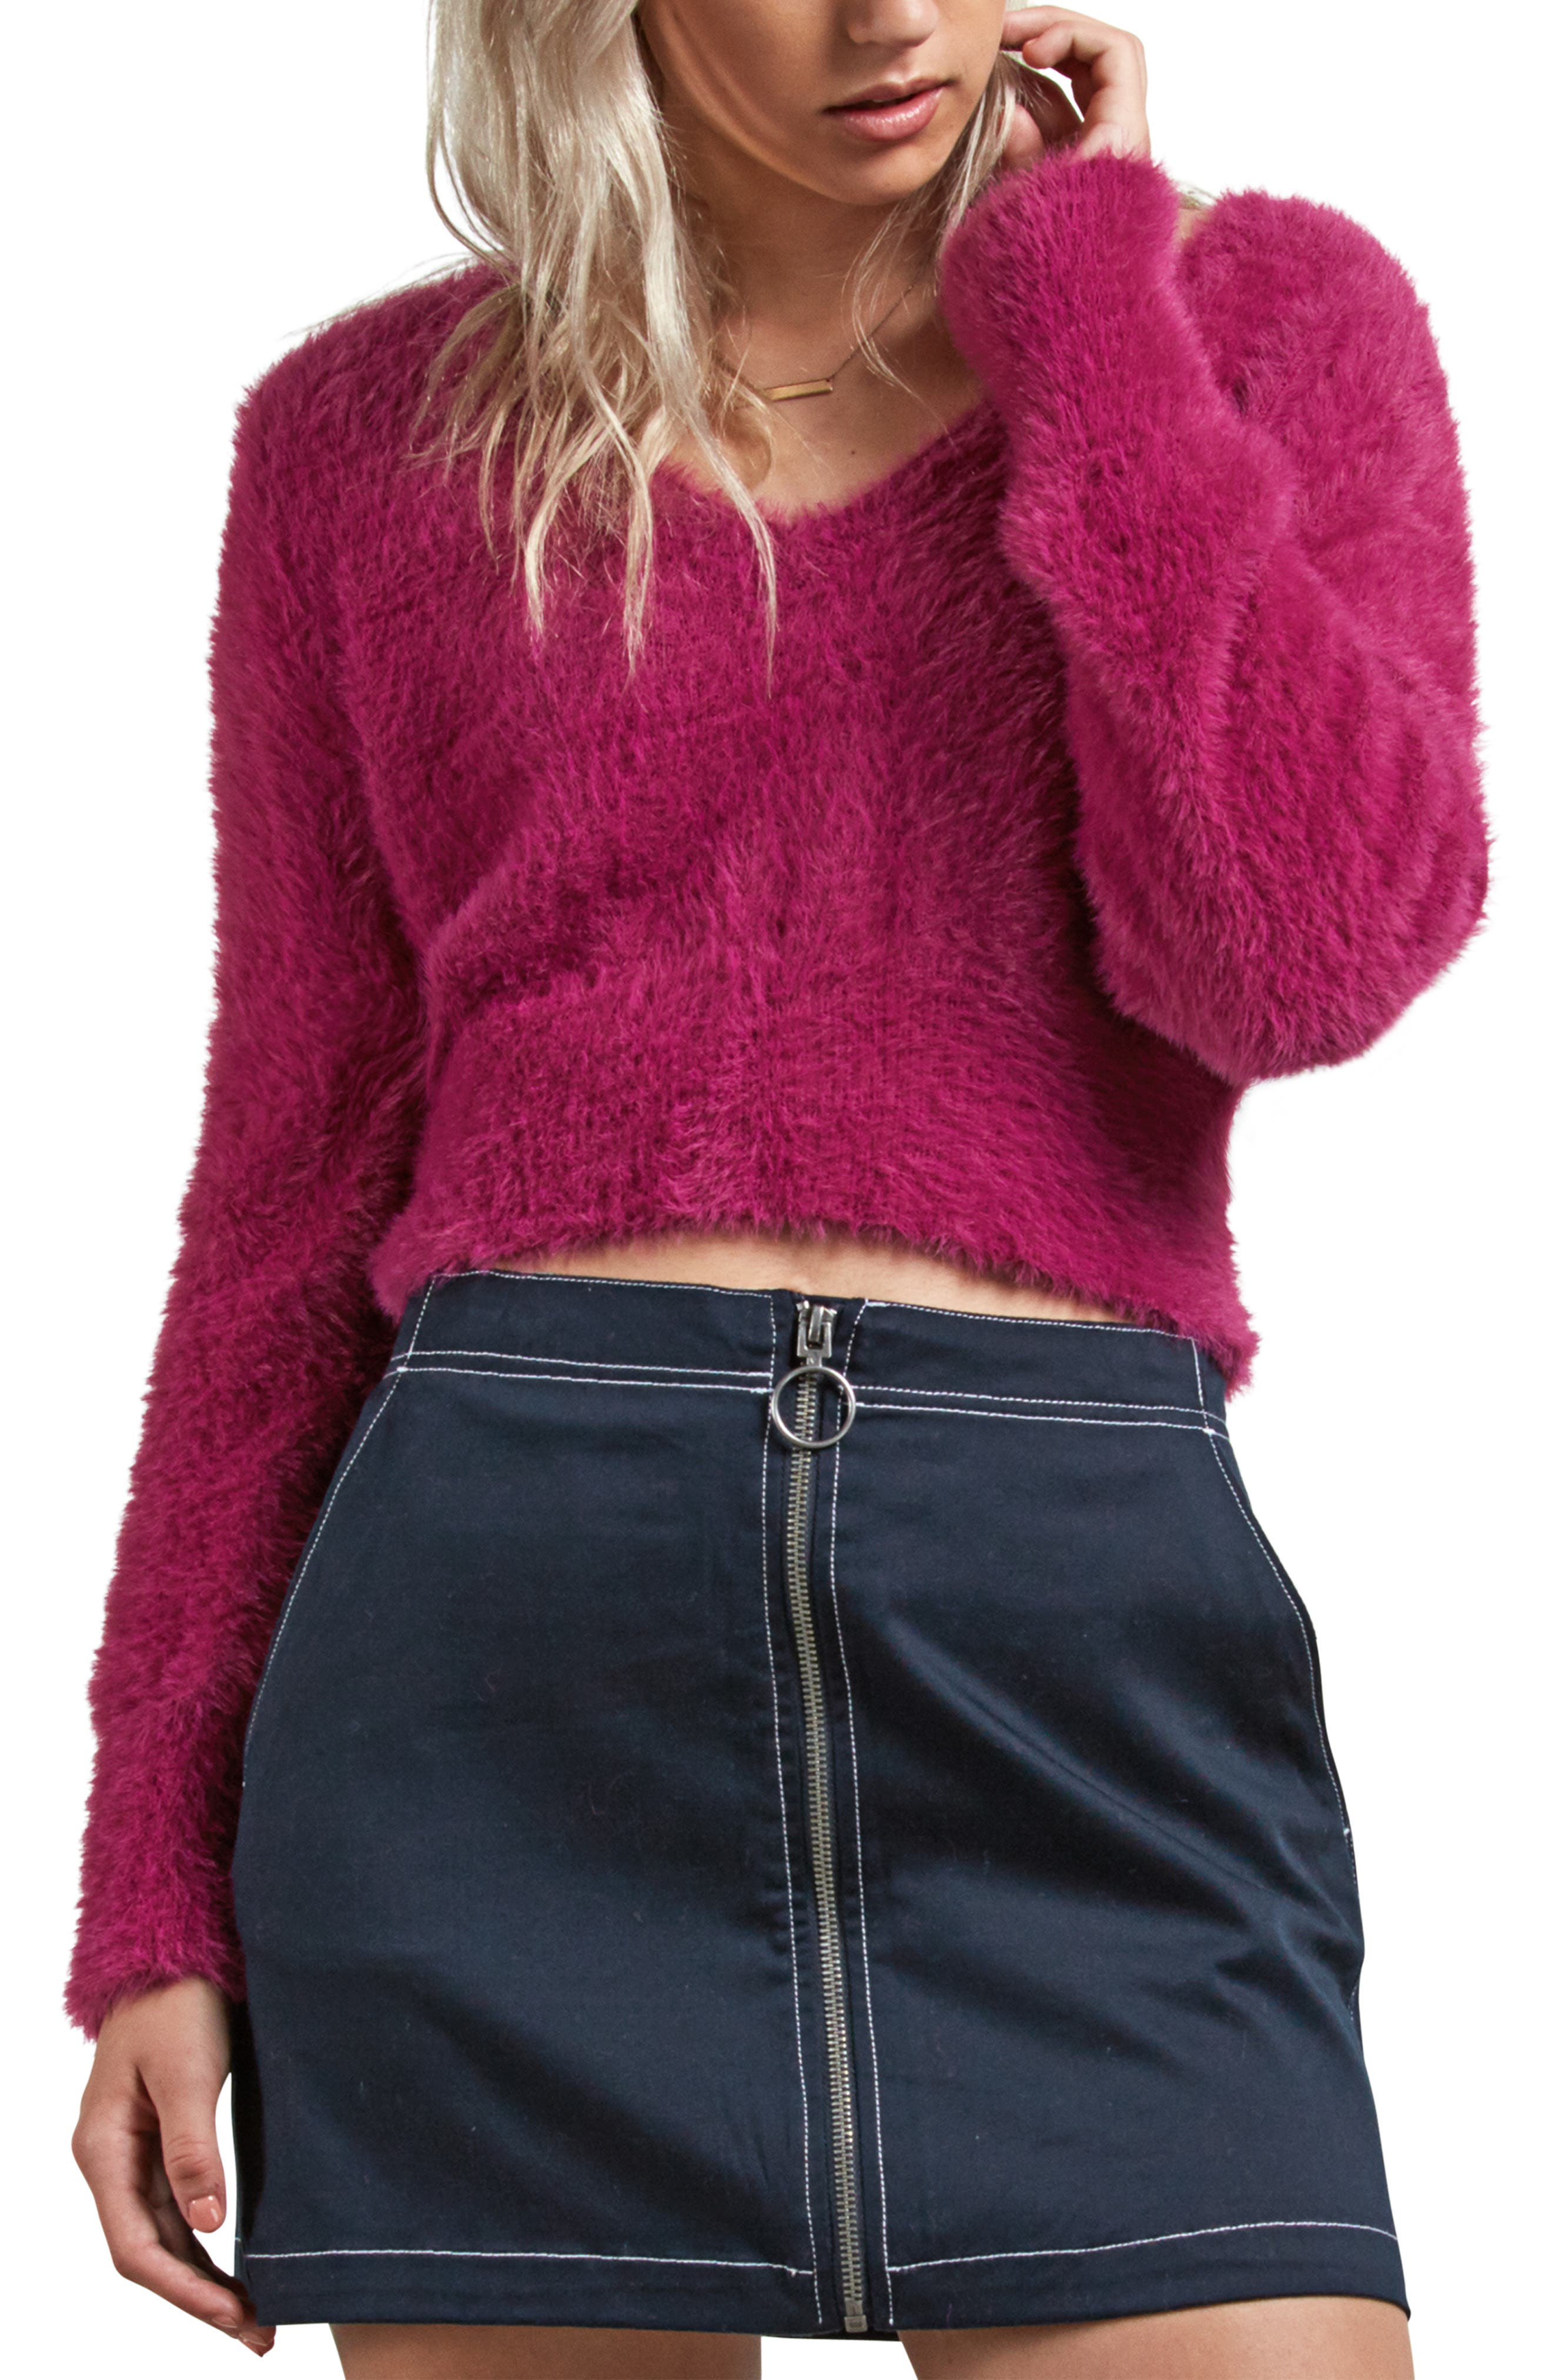 Clued 2 You Sweater,                             Main thumbnail 1, color,                             500